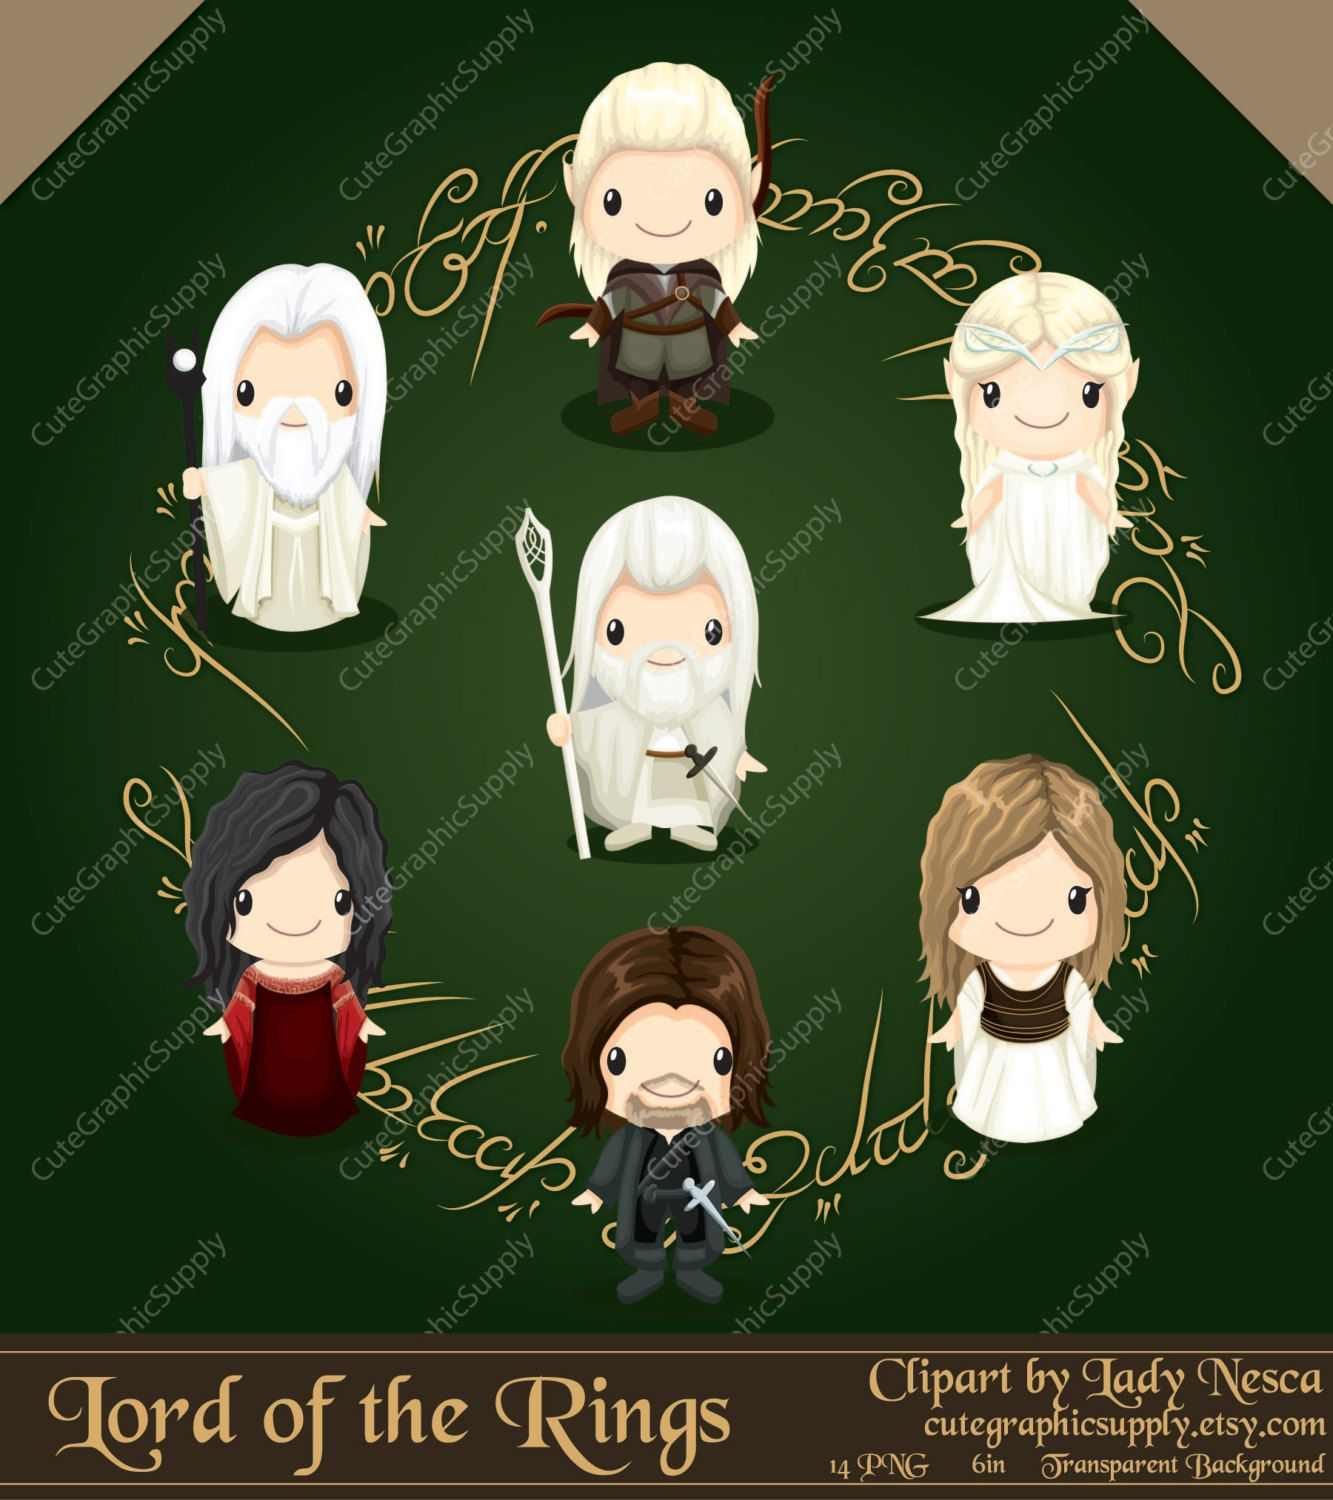 Pictures of gandalf from the hobbit clipart image freeuse Lord of the Rings inspired clipart hobbit by ... image freeuse